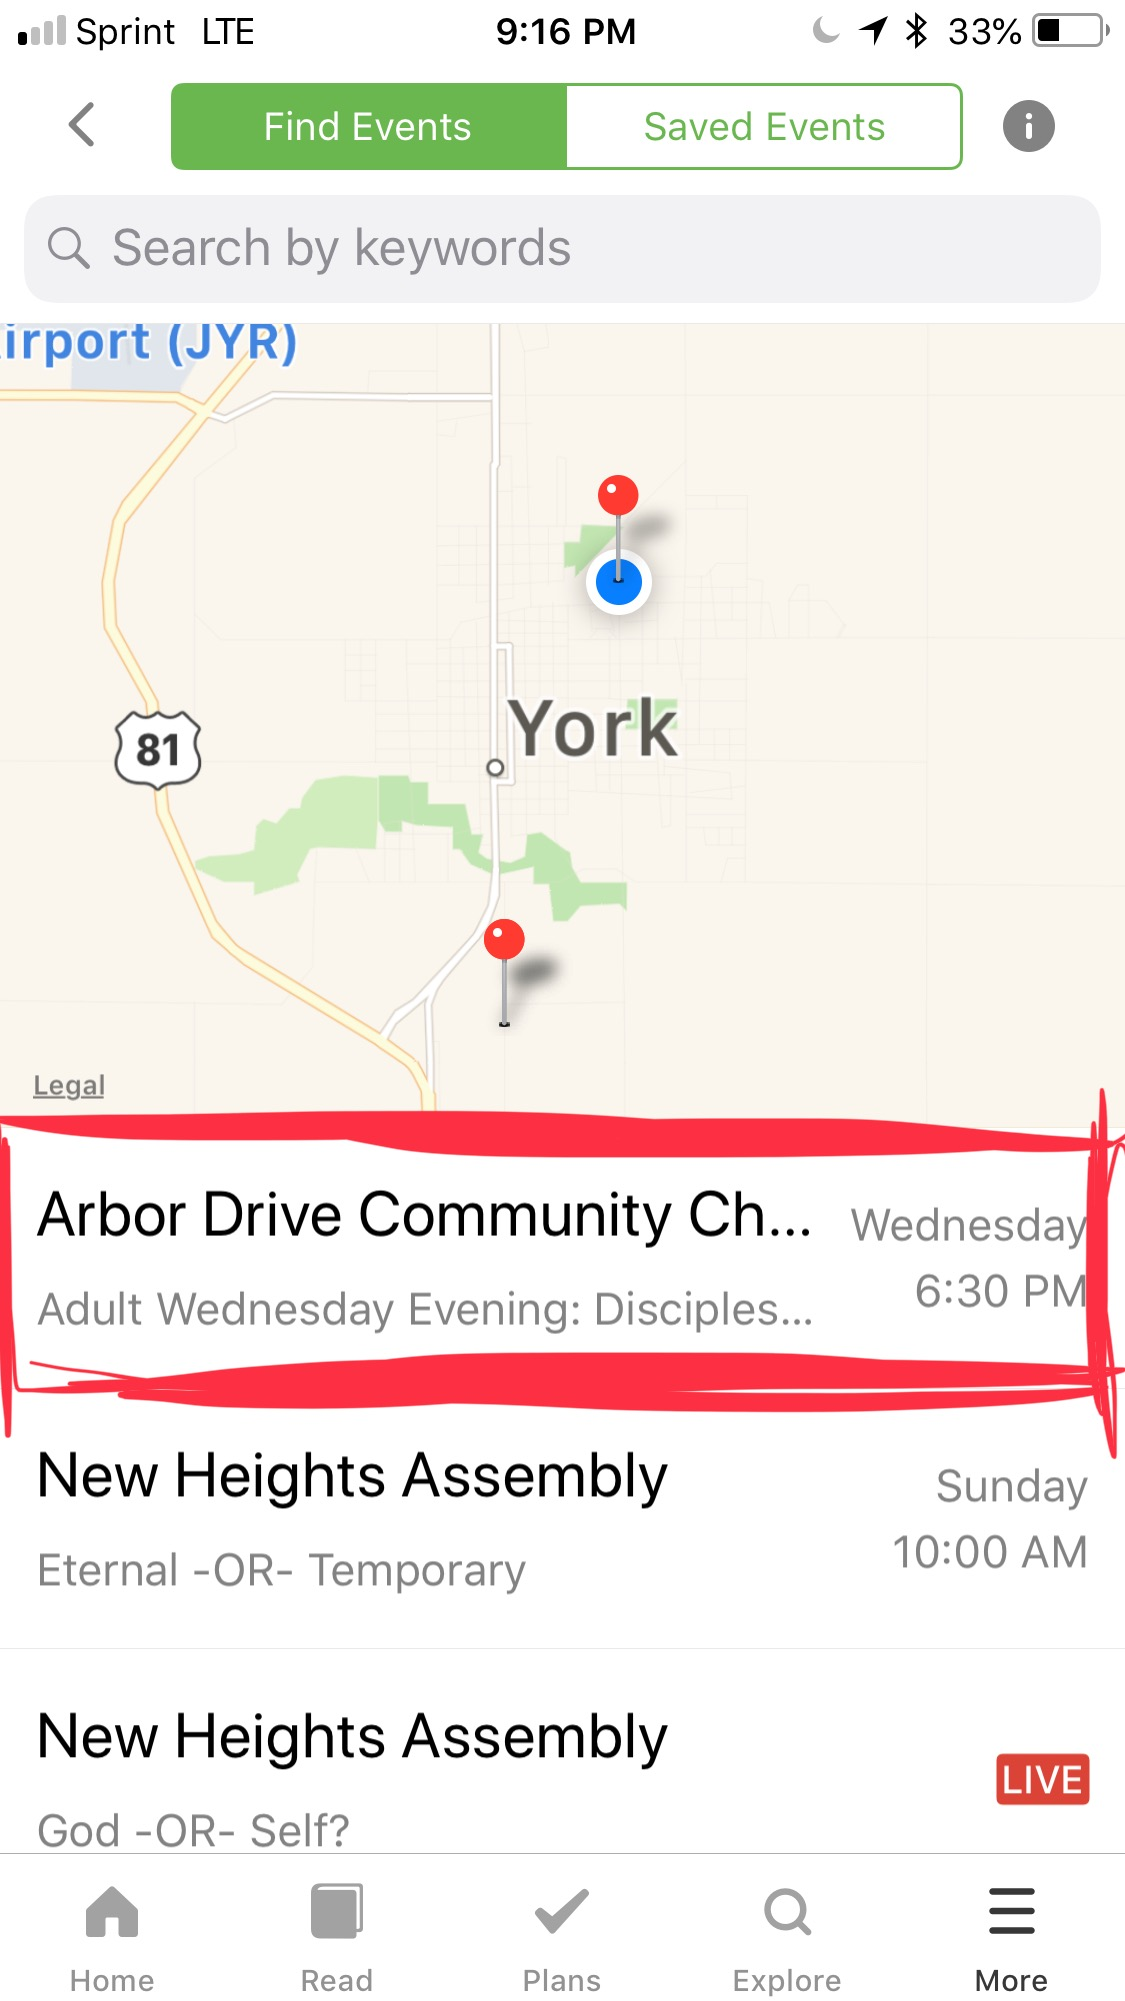 Click on the event - Arbor Drive Community Church